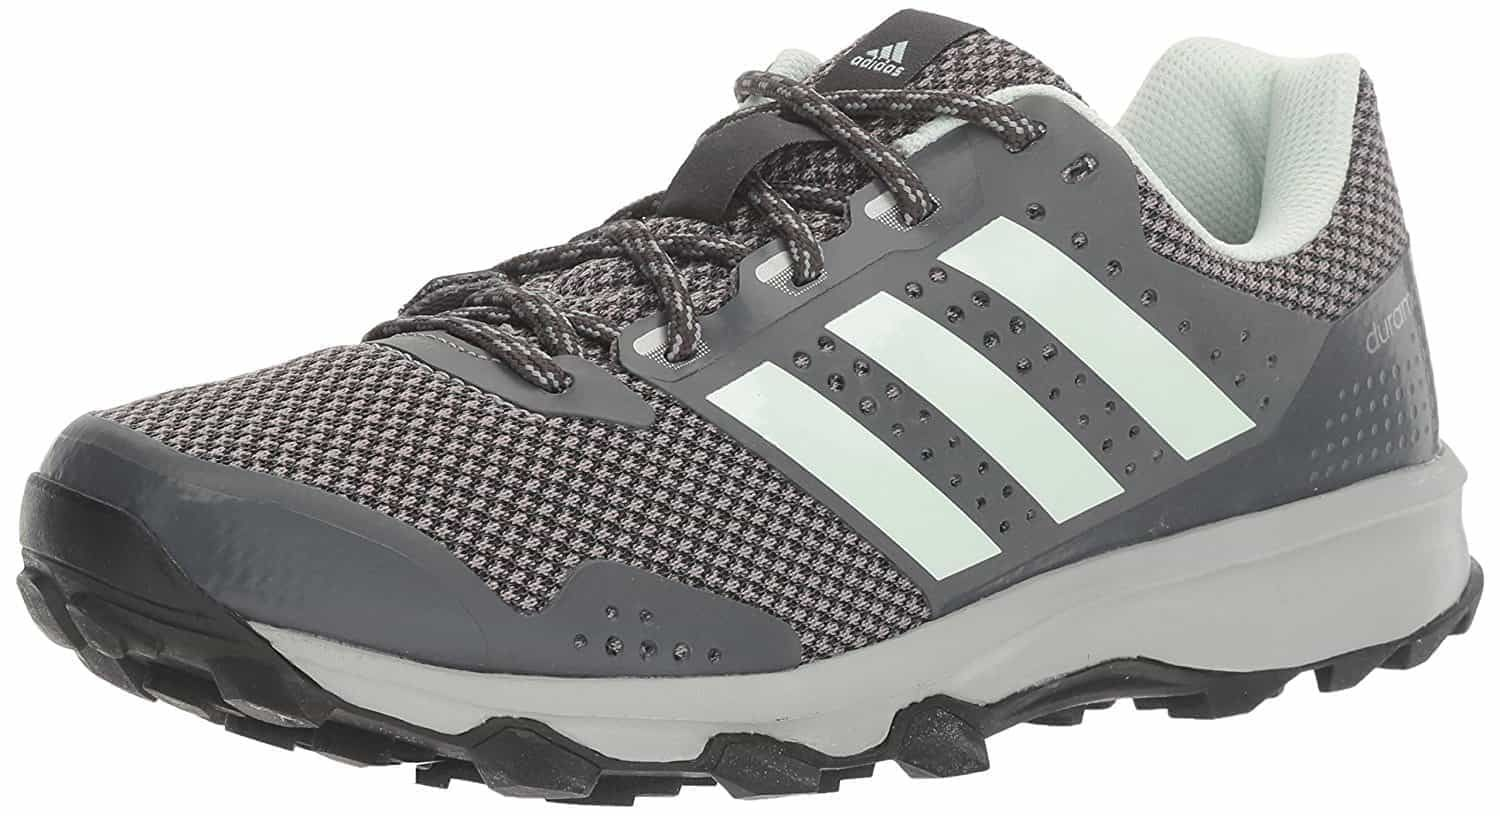 Adidas trail shoes, Womens running shoes